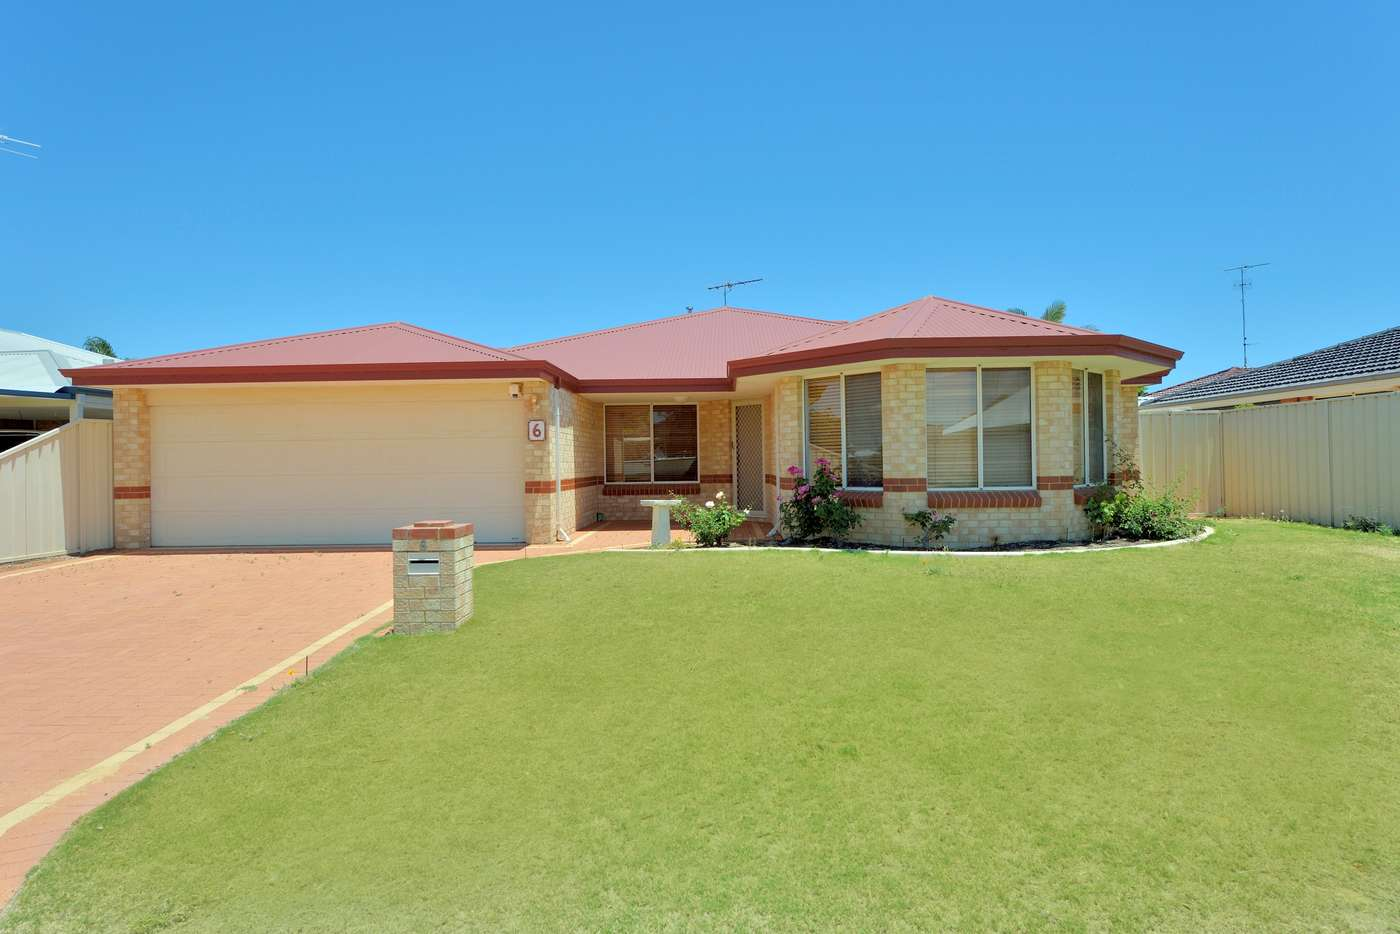 Main view of Homely house listing, 6 Beagle Court, Falcon WA 6210